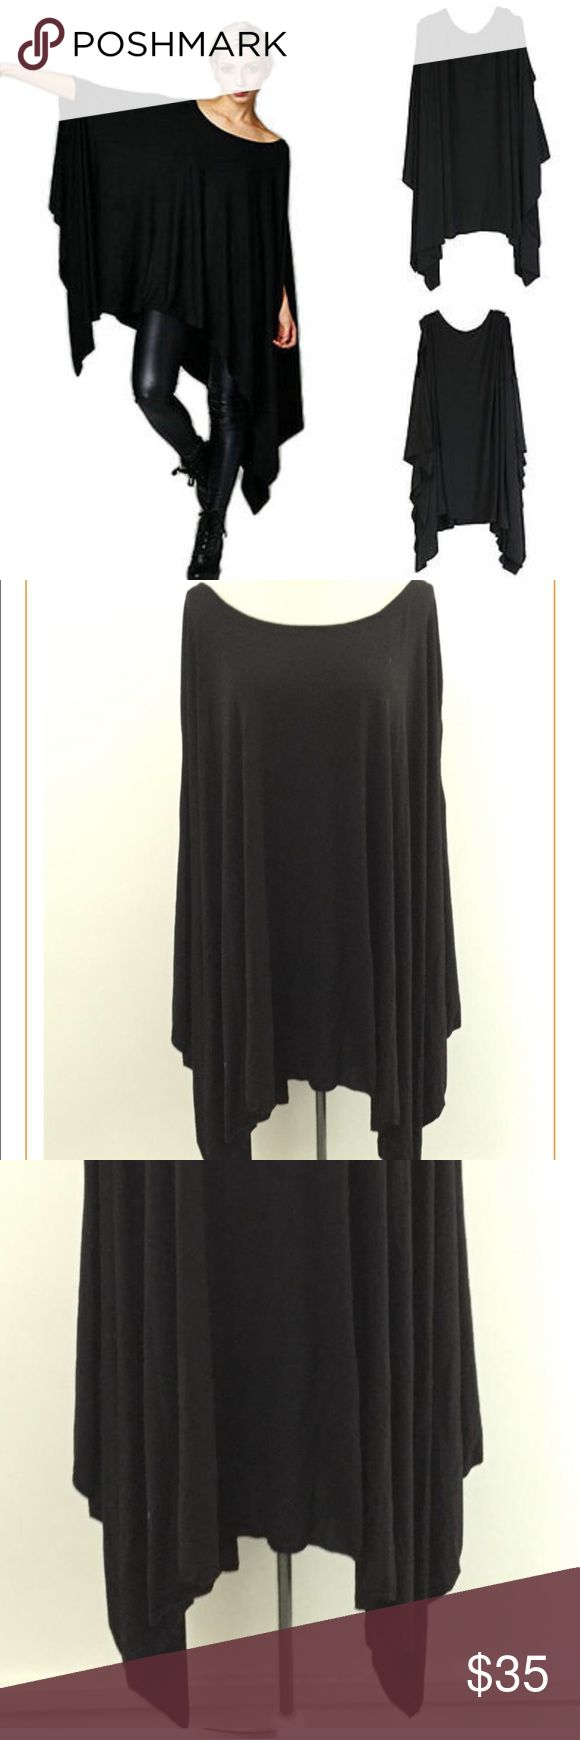 Plus Size Loose Batwing On hold till tonight Asymmetrical  plus size Loose Women Dress or top Plus Size Cloak Dress Girls Casual Batwing Sleeve T Shirt Dress Vestidos Specifics Plus size  WaistlineLoose Sleeve StyleBatwing Sleeve Pattern TypeSolid black  StyleCasual MaterialCotton blend  NecklineO-Neck SilhouetteAsymmetrical Sleeve LengthThree quarters  No tickets  was in show room as sample new condition 2x but it's great for size fits all plus as it's runs big and loose as a dress…